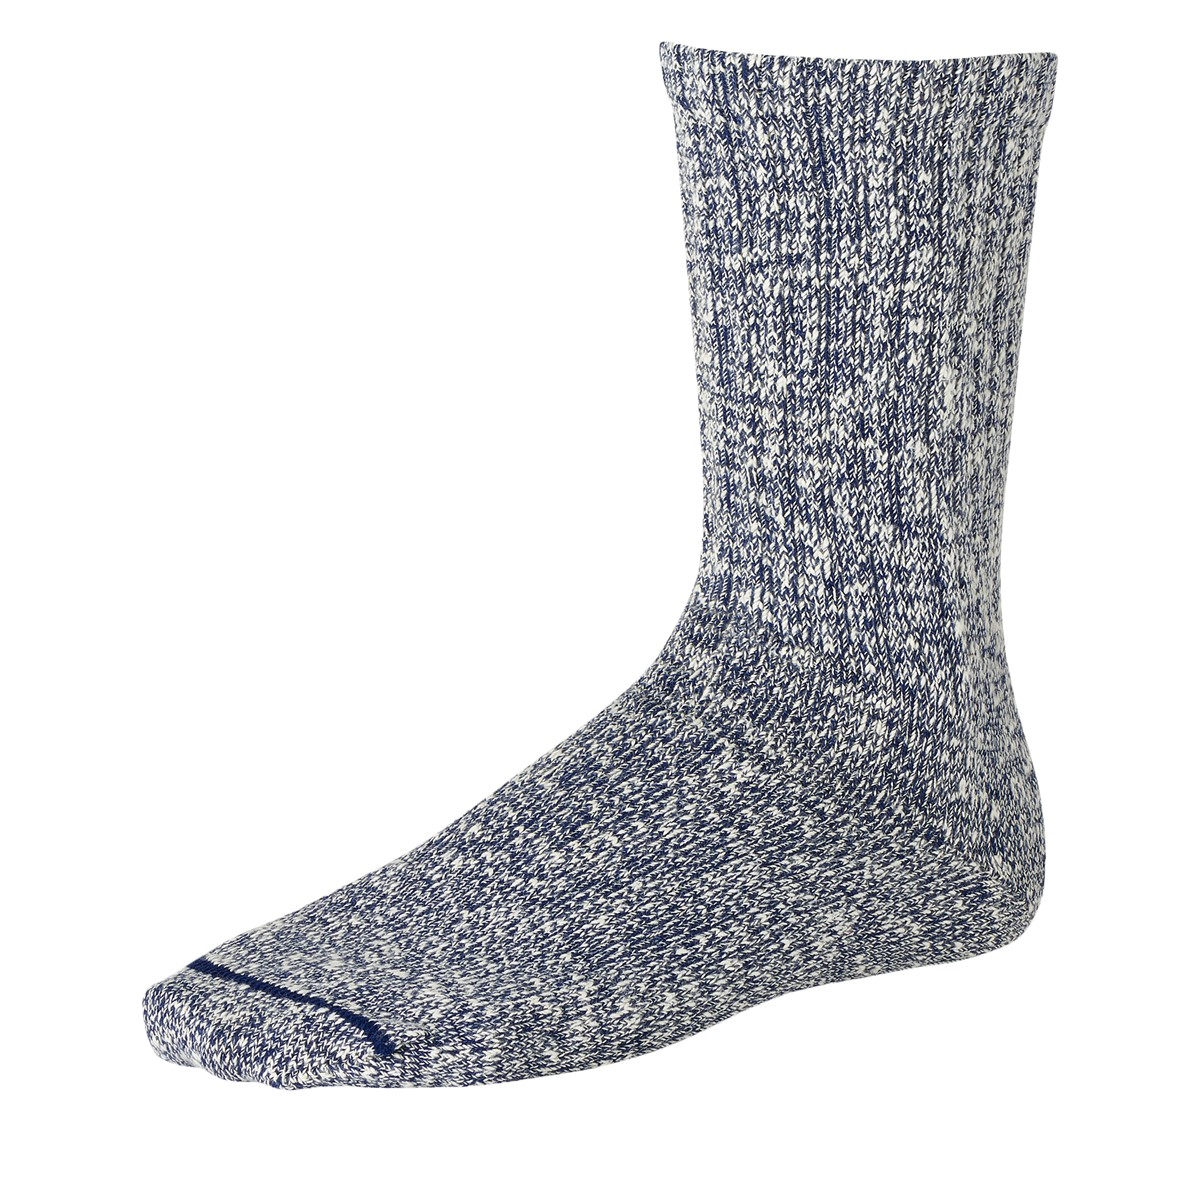 Cotton Ragg Crew Socks in Navy